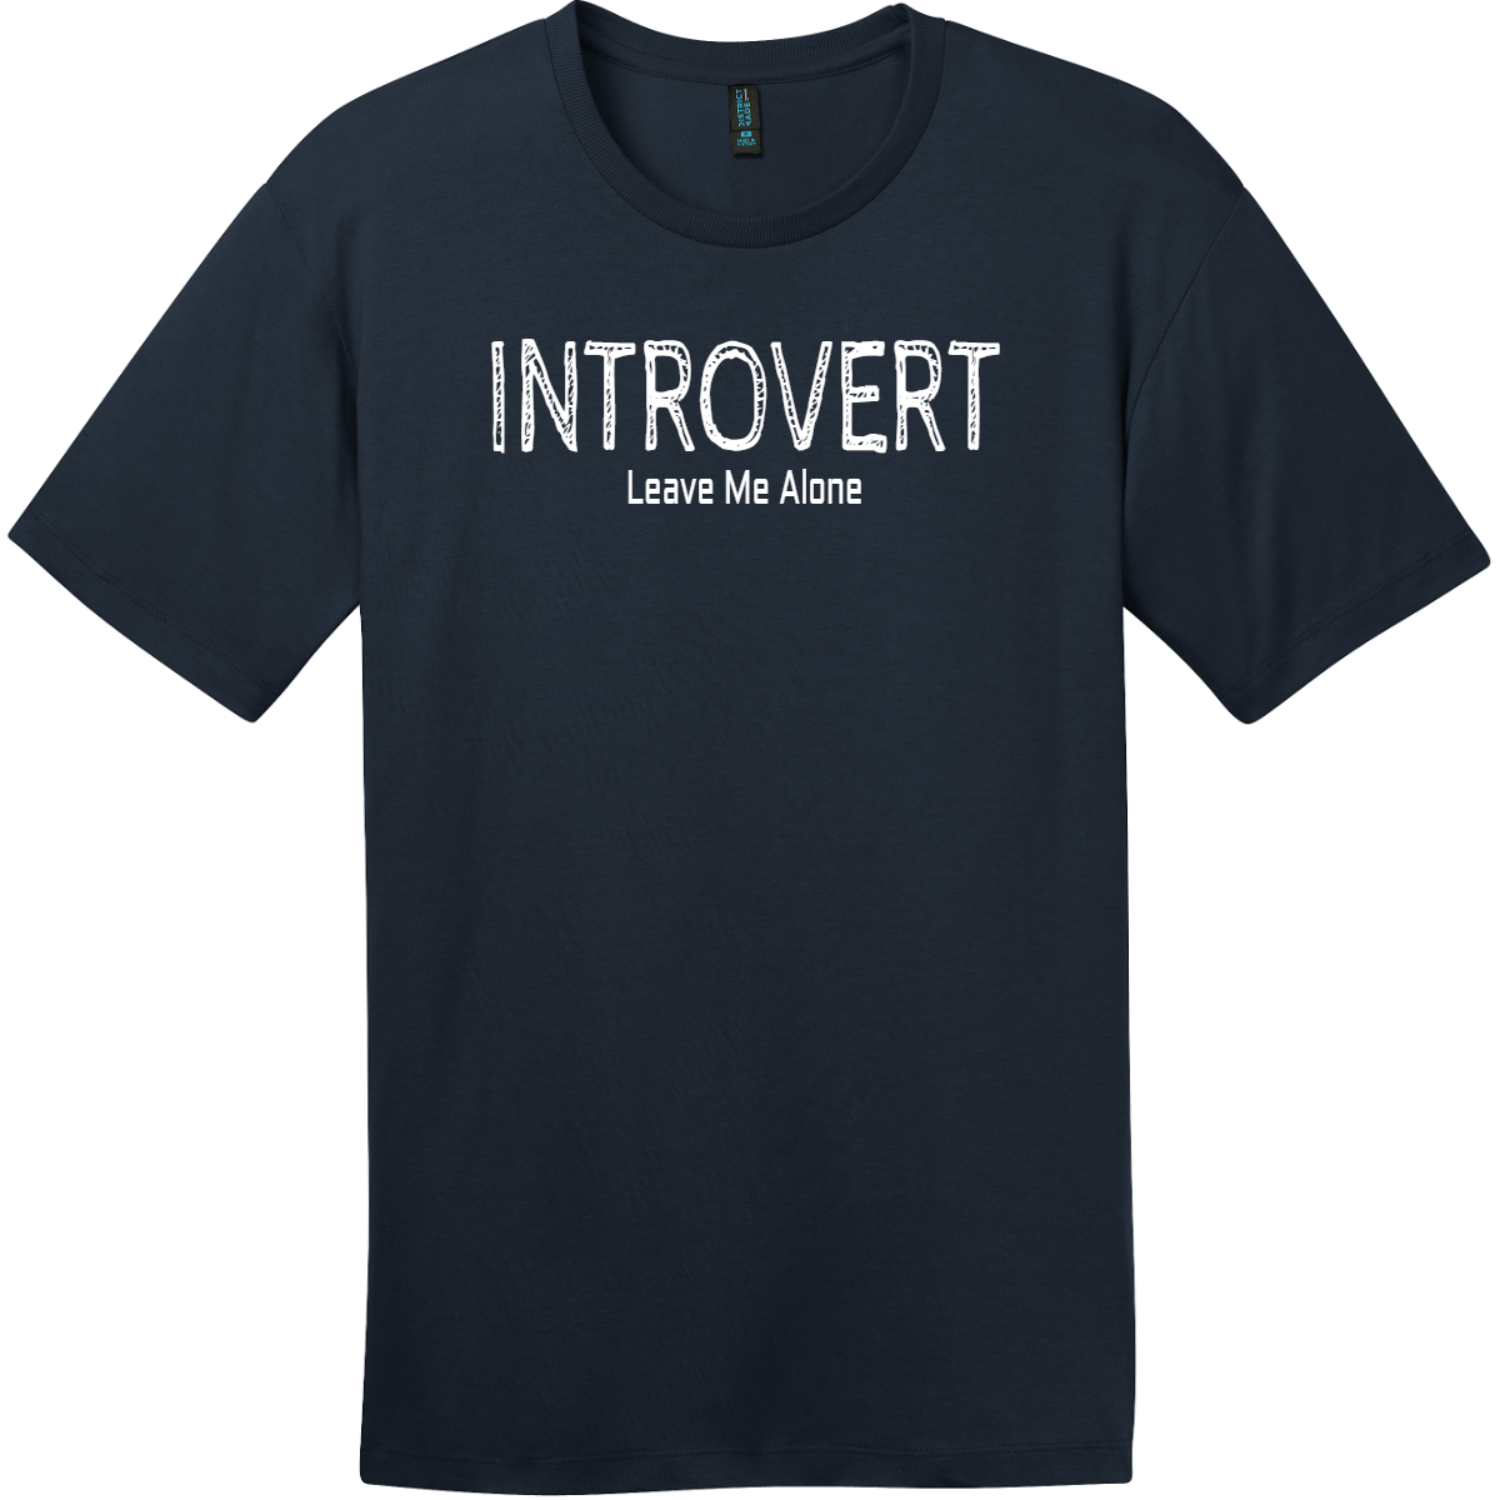 Introvert Leave Me Alone T-Shirt New Navy District Perfect Weight Tee DT104